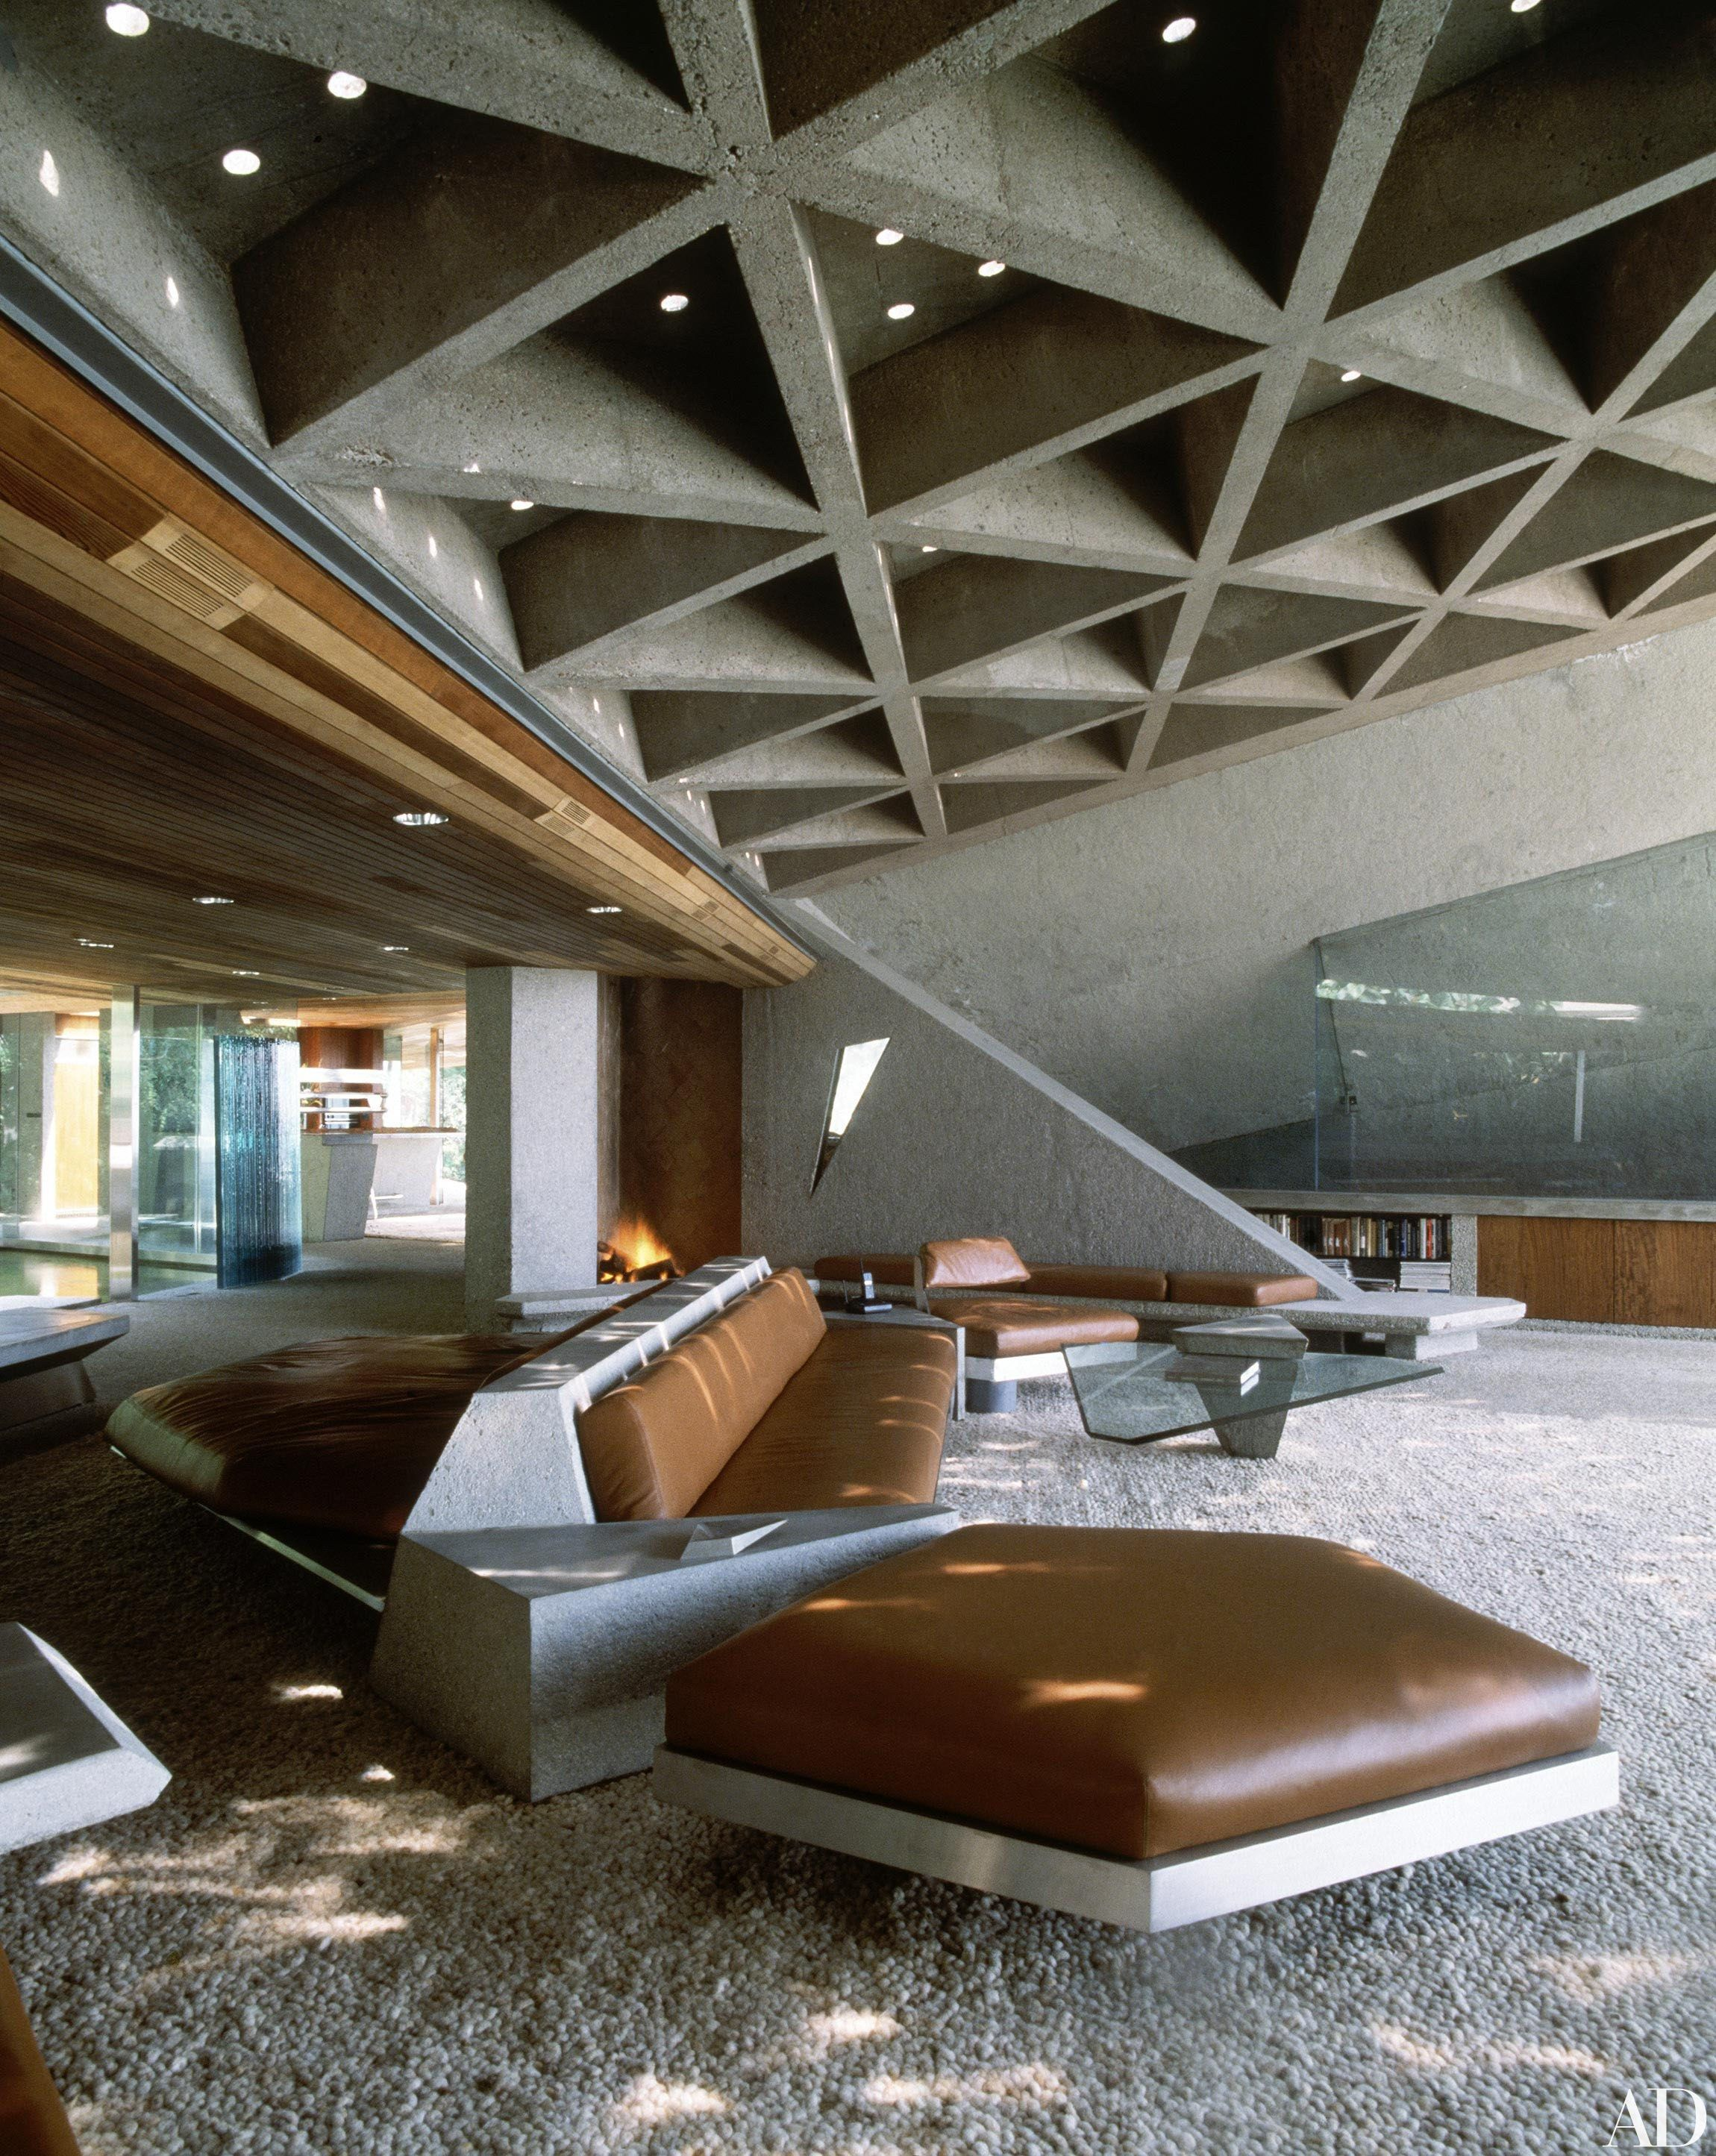 A Look Inside John Lautner's Historic SheatsGoldstein House is part of architecture - It is the first piece of architecture bestowed on the Los Angeles County Museum of Art